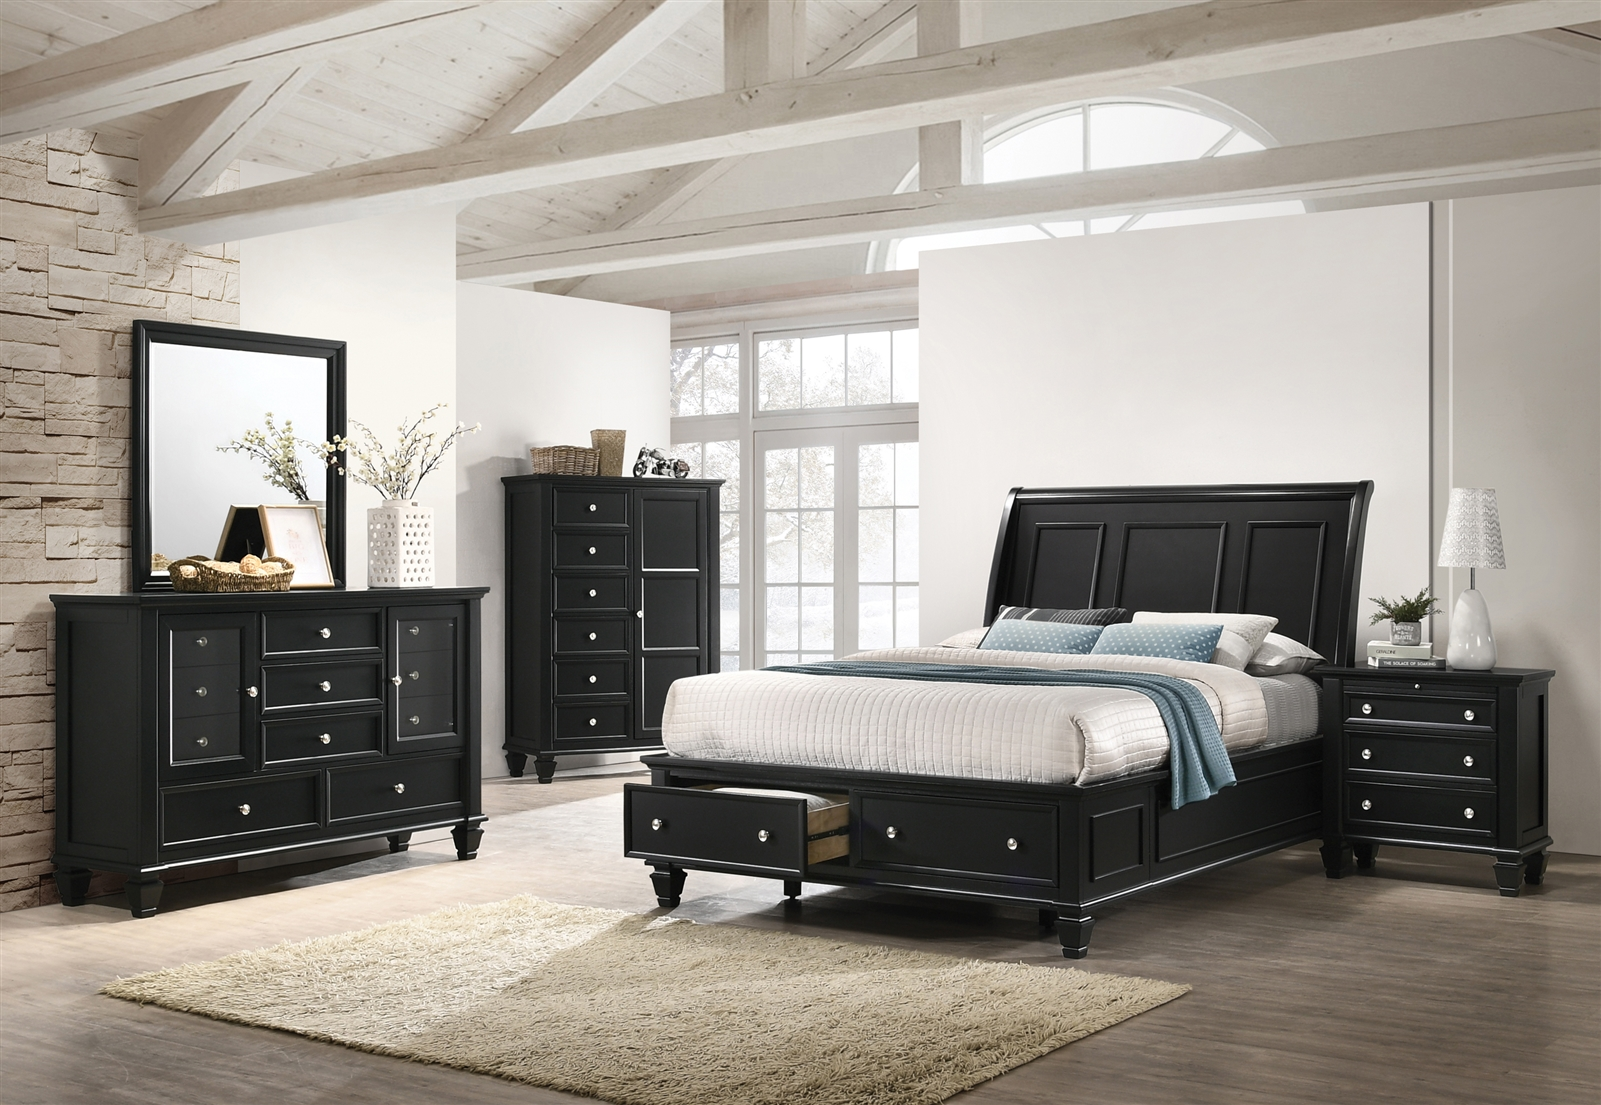 Queen Size Cottage Sleigh Bed with Storage in Black